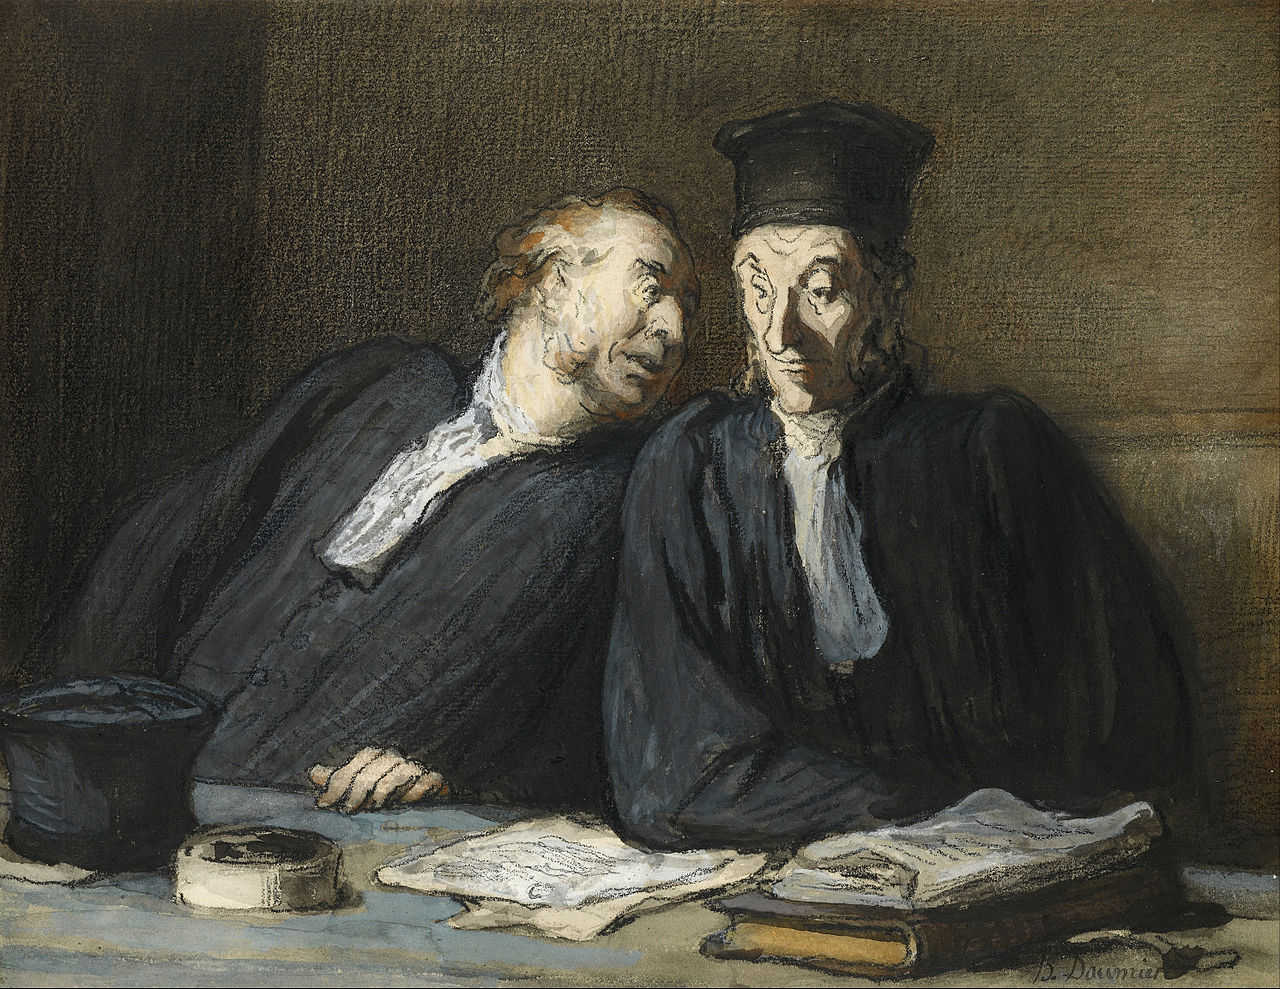 https://commons.wikimedia.org/wiki/File:Honor%C3%A9_Daumier_-_Two_Lawyers_Conversing_-_Google_Art_Project.jpg